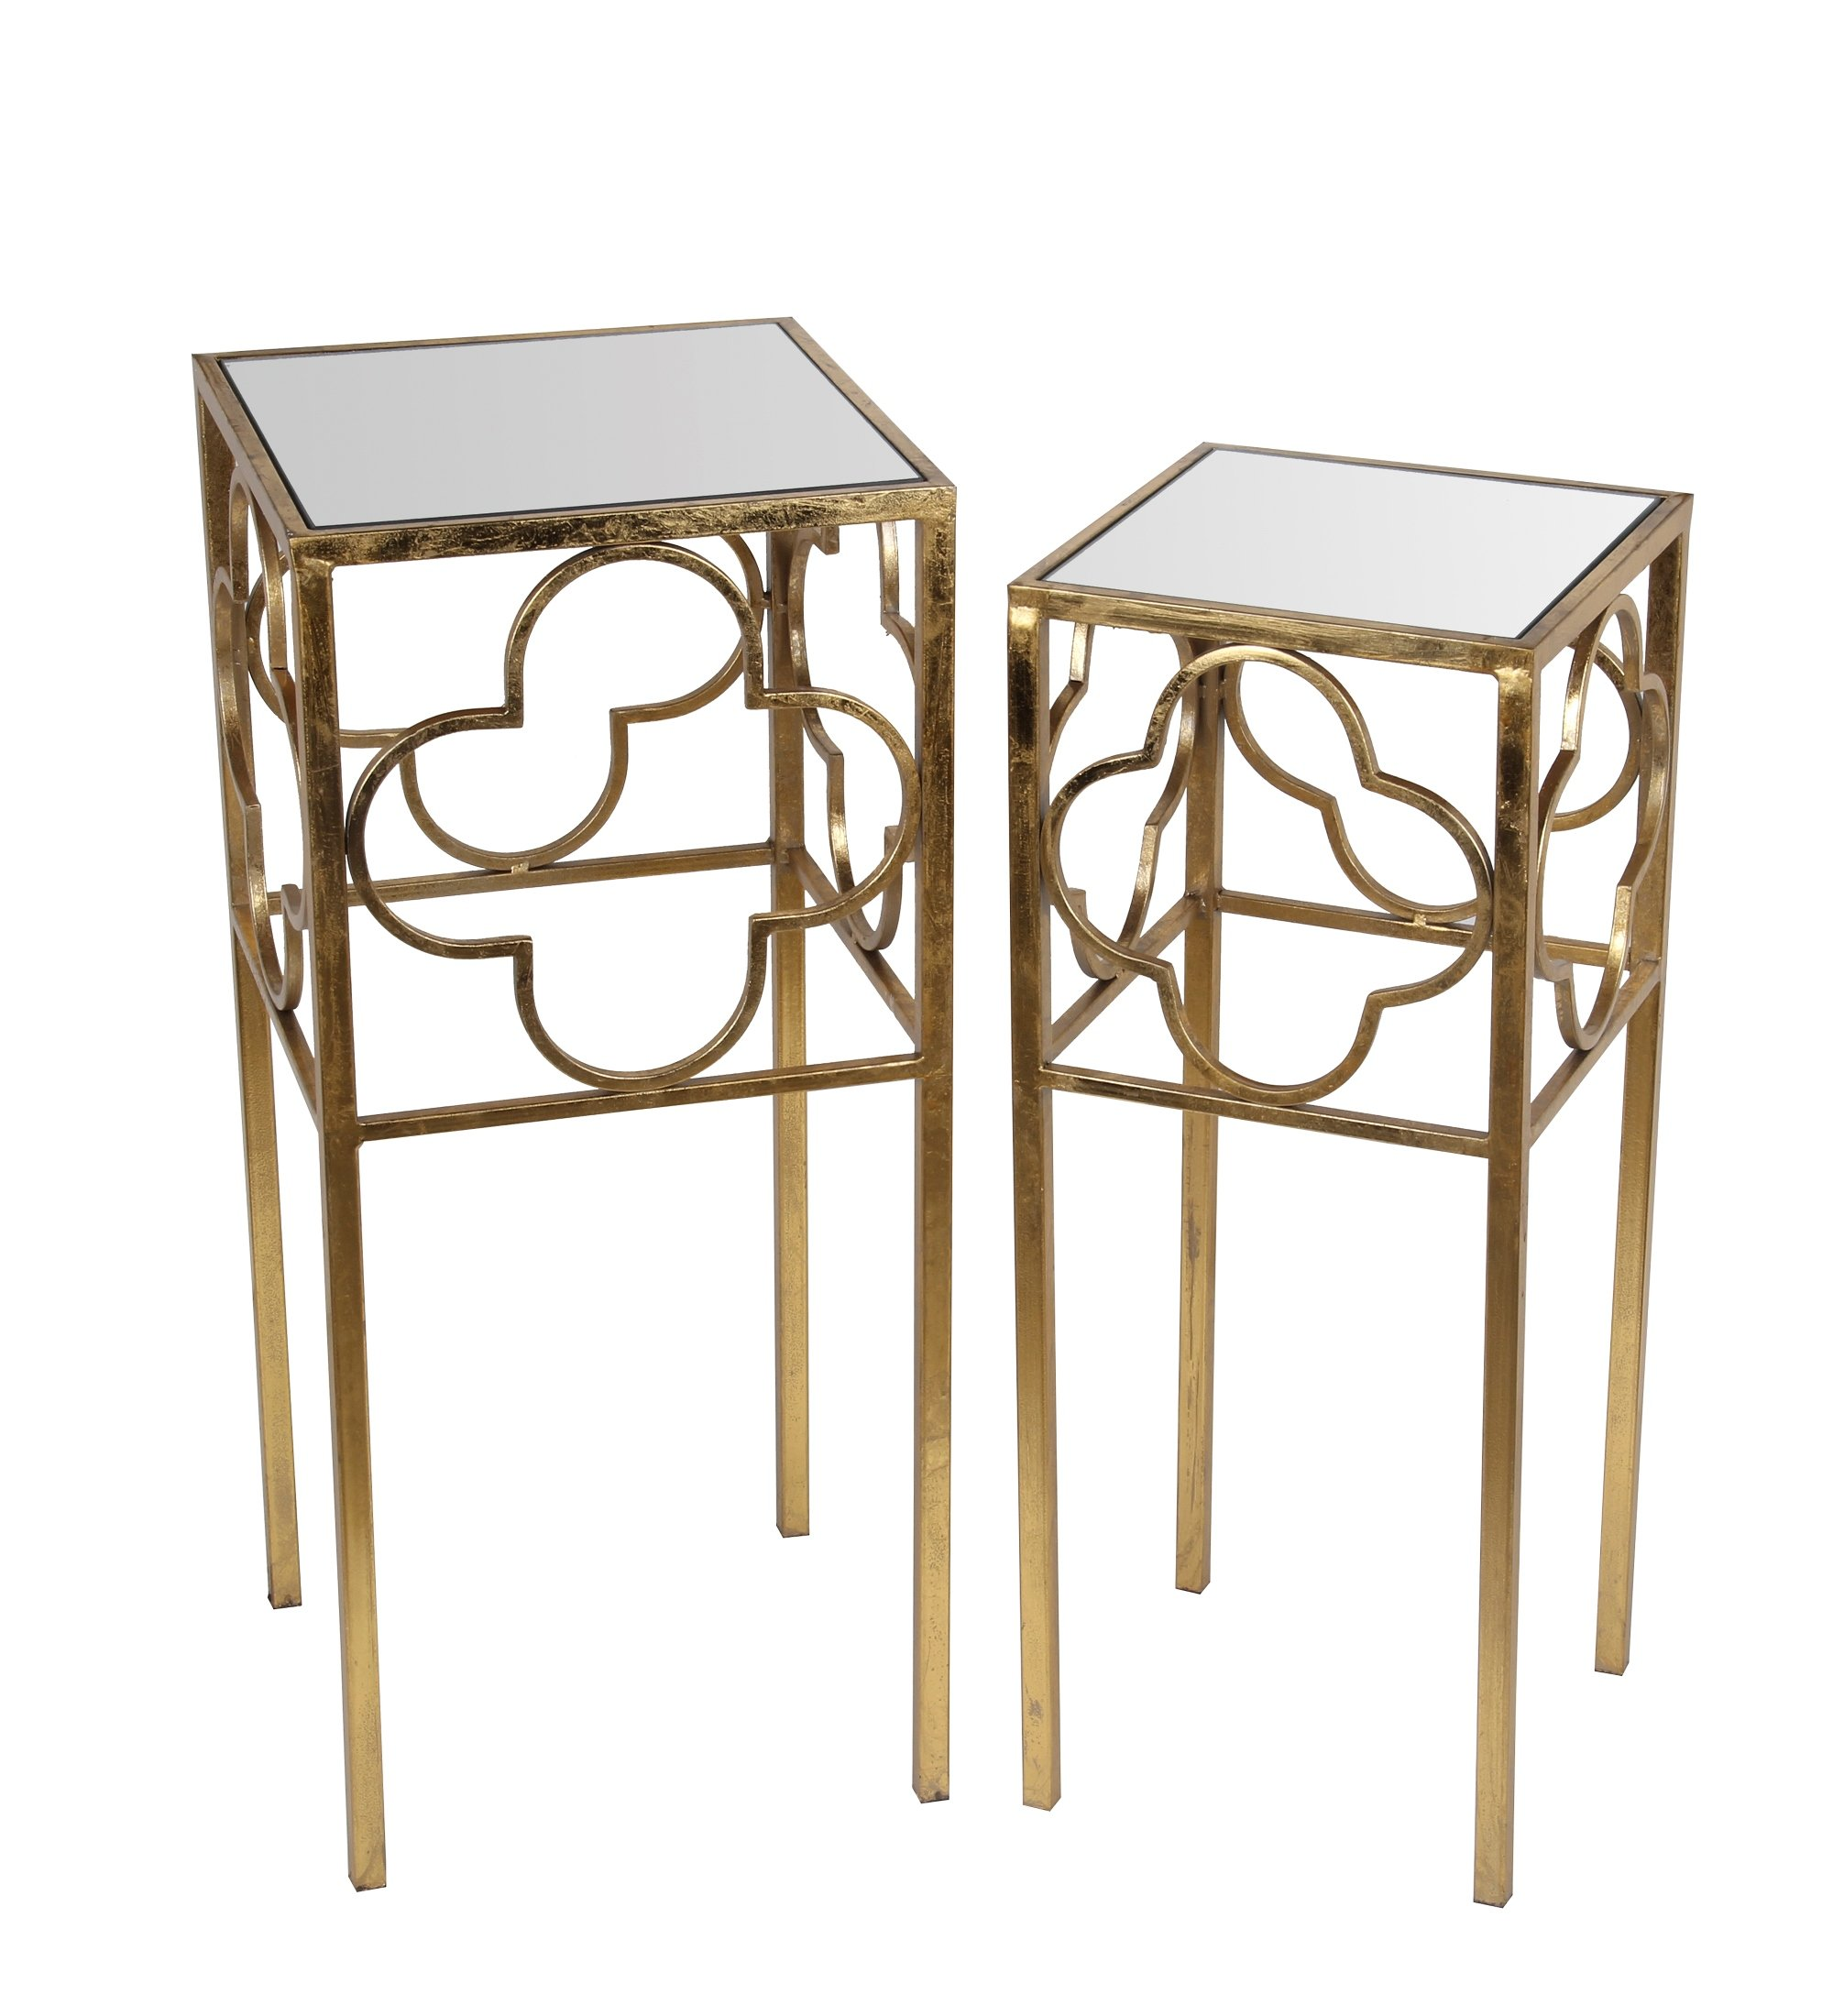 Privilege 18978 2 Piece Acct Leaf Table, Gold